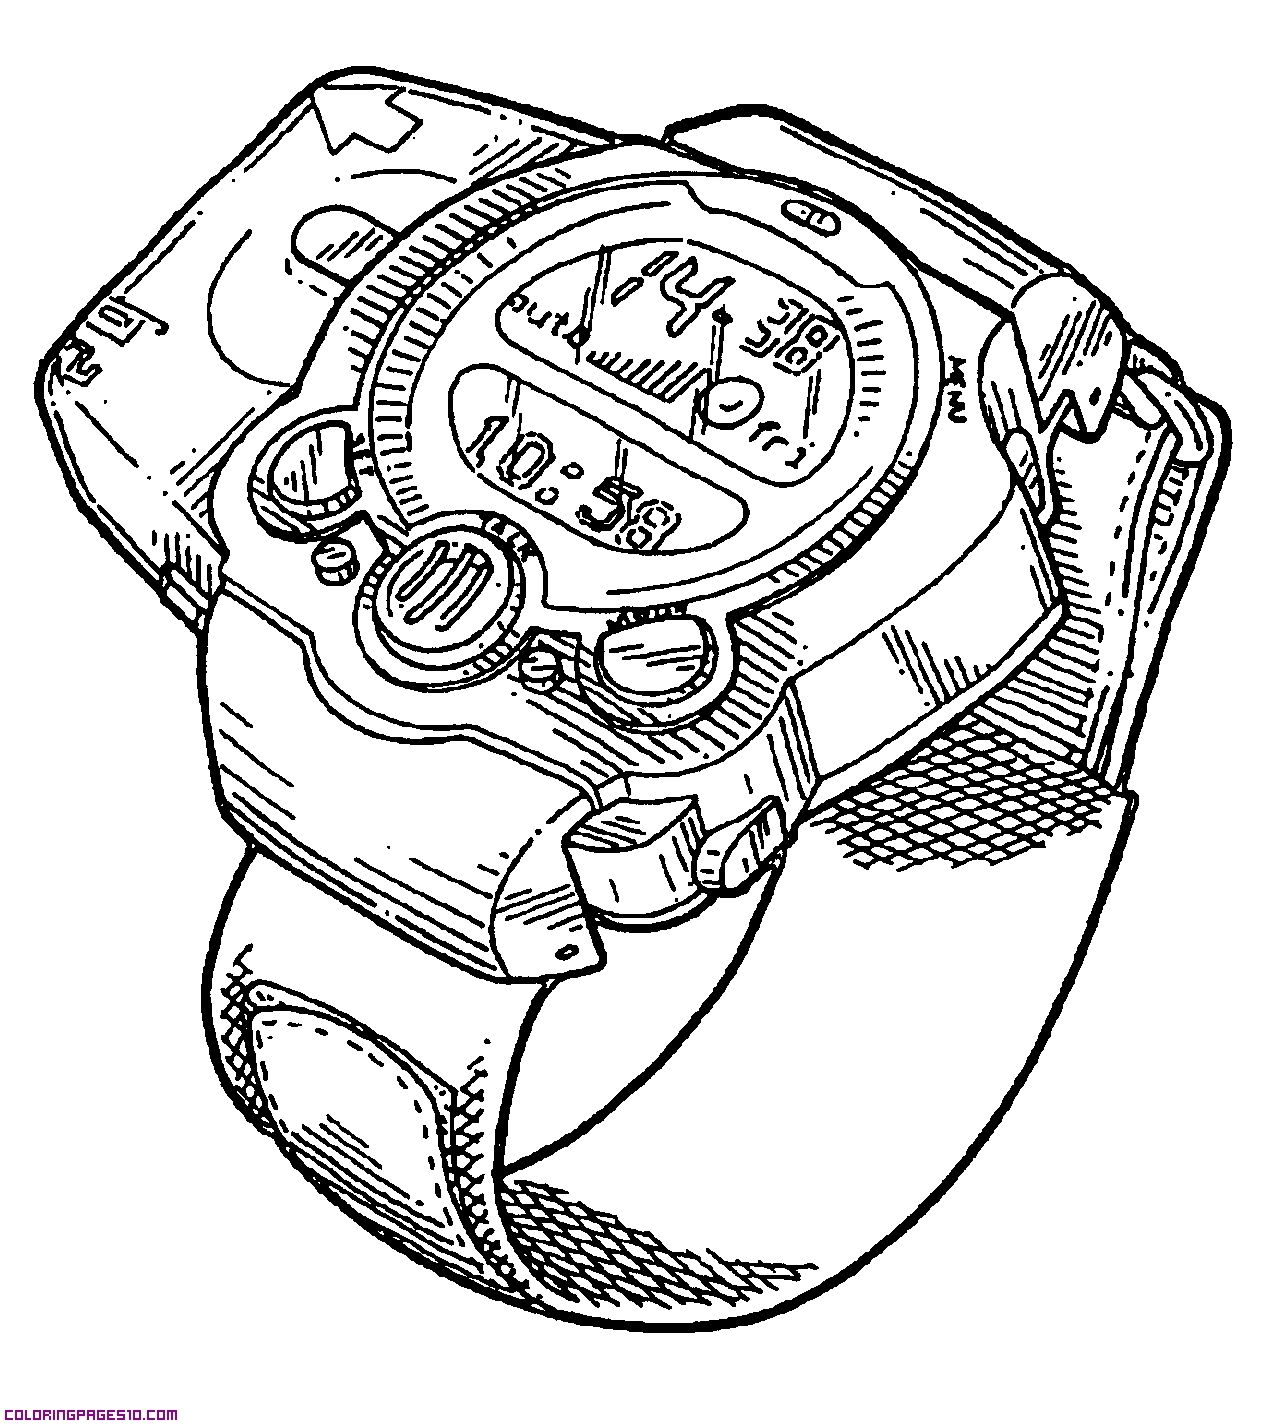 Ben 10 And Watch Coloring Page Only Coloring Pages Coloring Pages Inspirational Coloring Pages Unique Coloring Pages